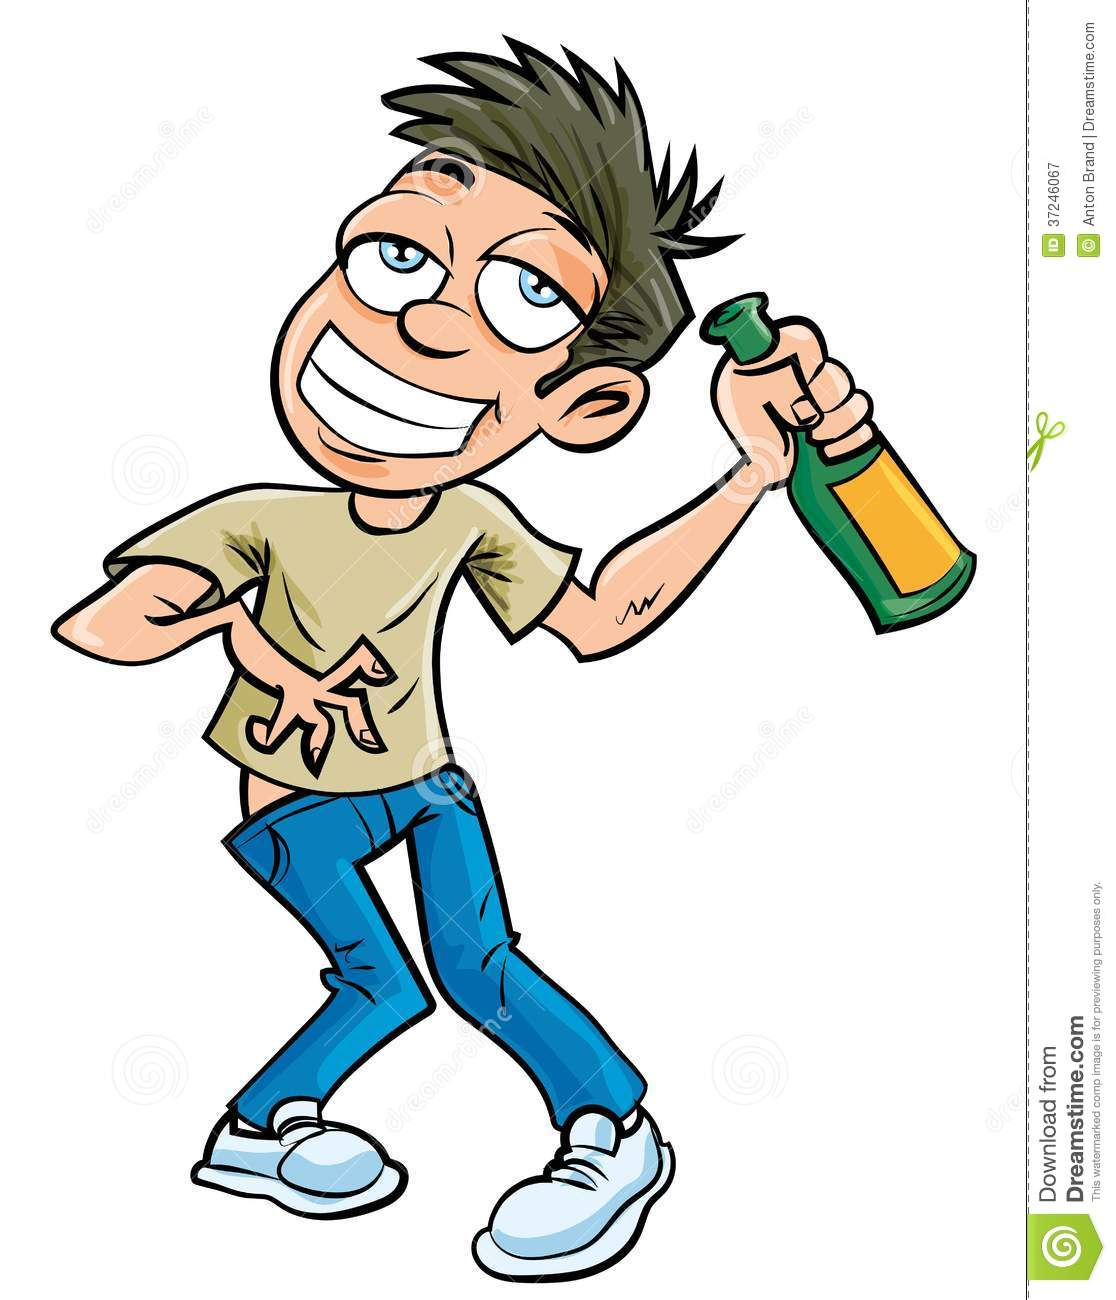 Cartoon Drunk Man With Champagne Bottle Royalty Free Stock